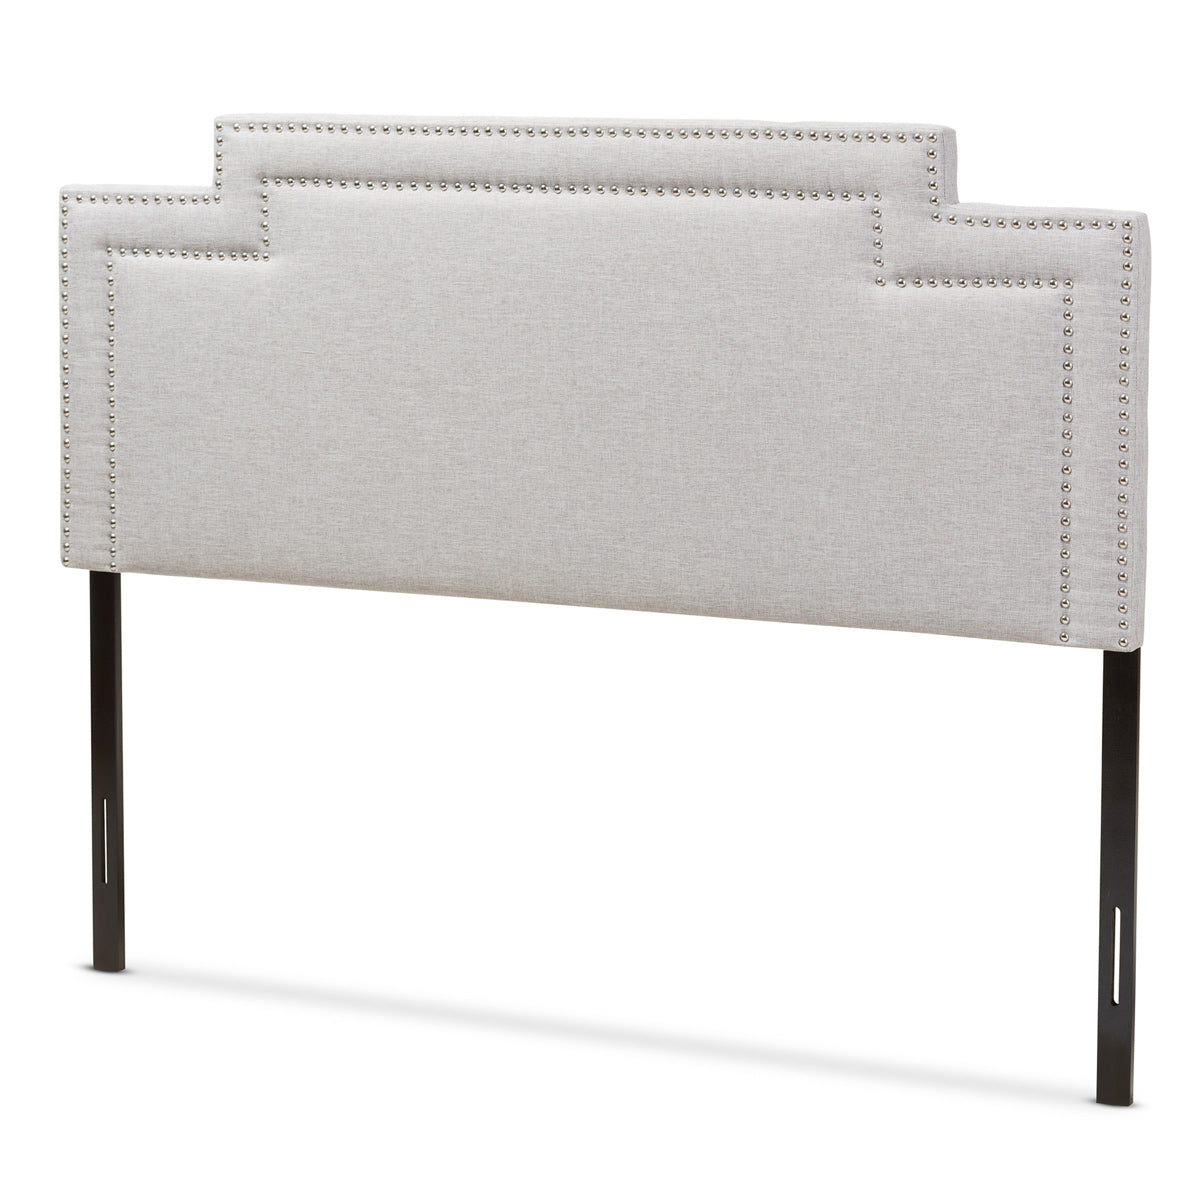 Baxton Studio Casey Modern and Contemporary Greyish Beige Fabric King Size Headboard Baxton Studio-Headboards-Minimal And Modern - 1